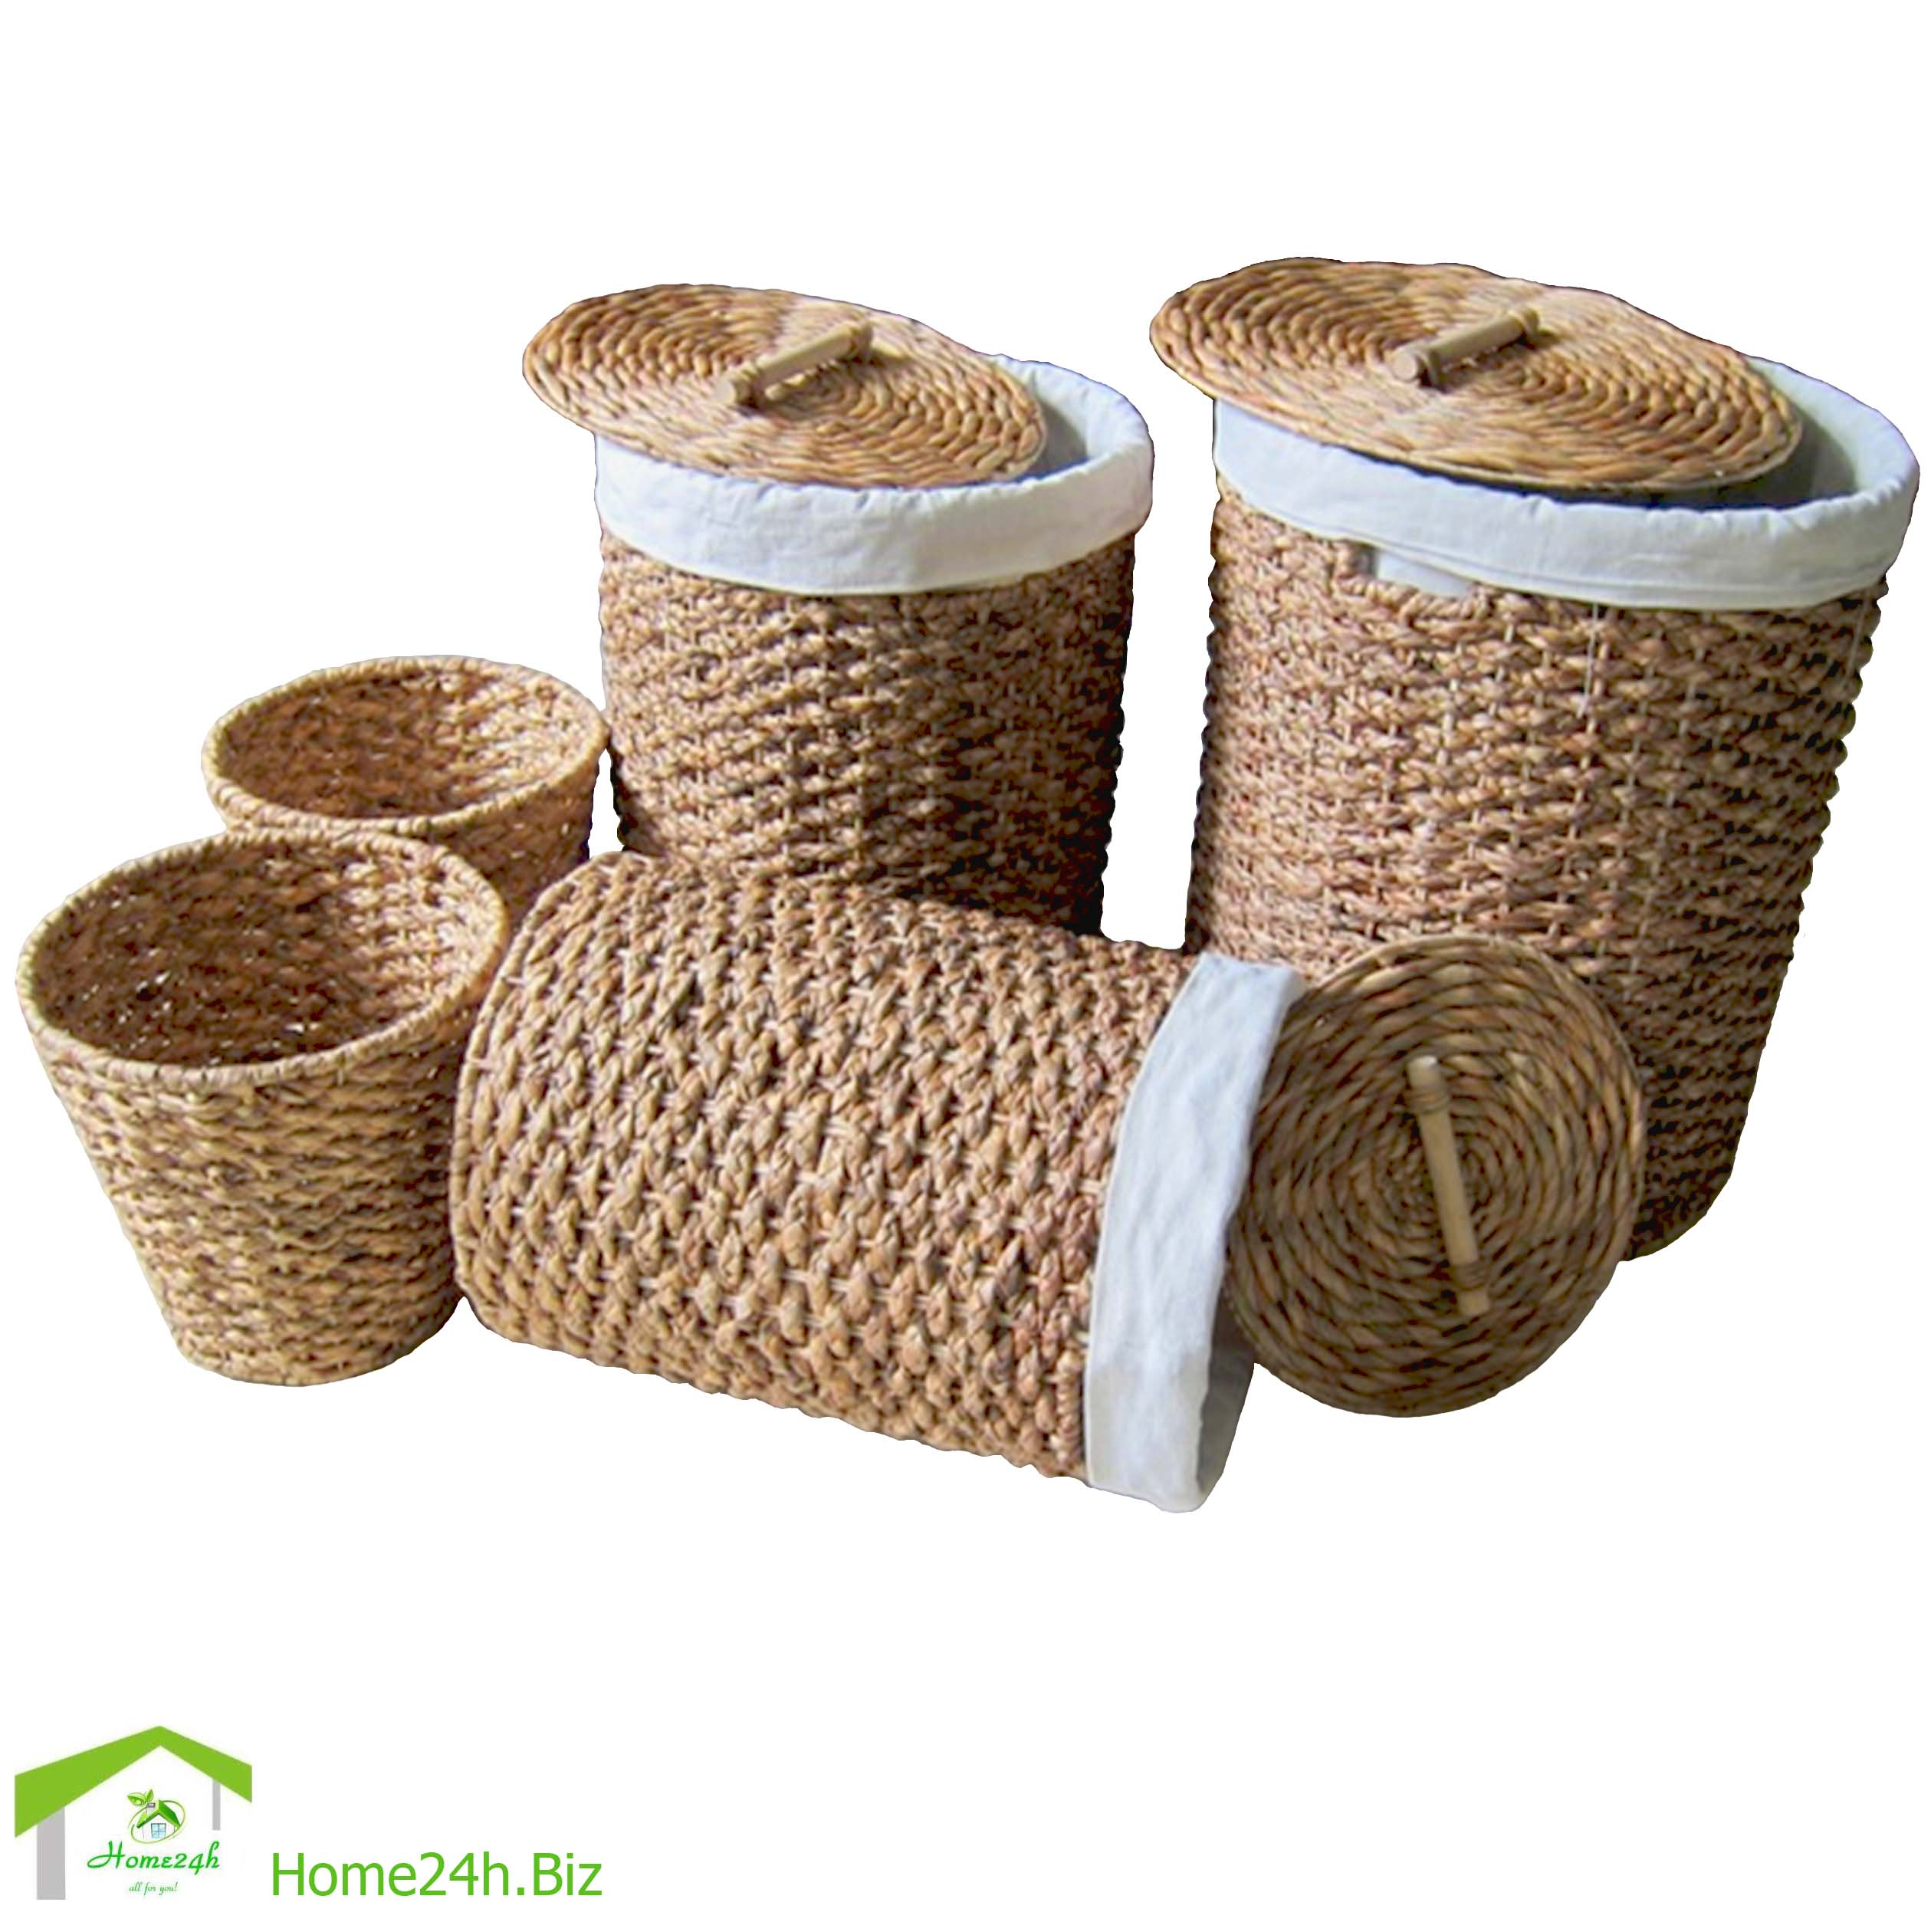 Vietnam Crafts Handmade Washing Basket Water Hyacinth Wicker Laundry Hampers Buy Wicker Laundry Hampers Rectangular Laundry Hamper Round Laundry Hamper Product On Alibaba Com